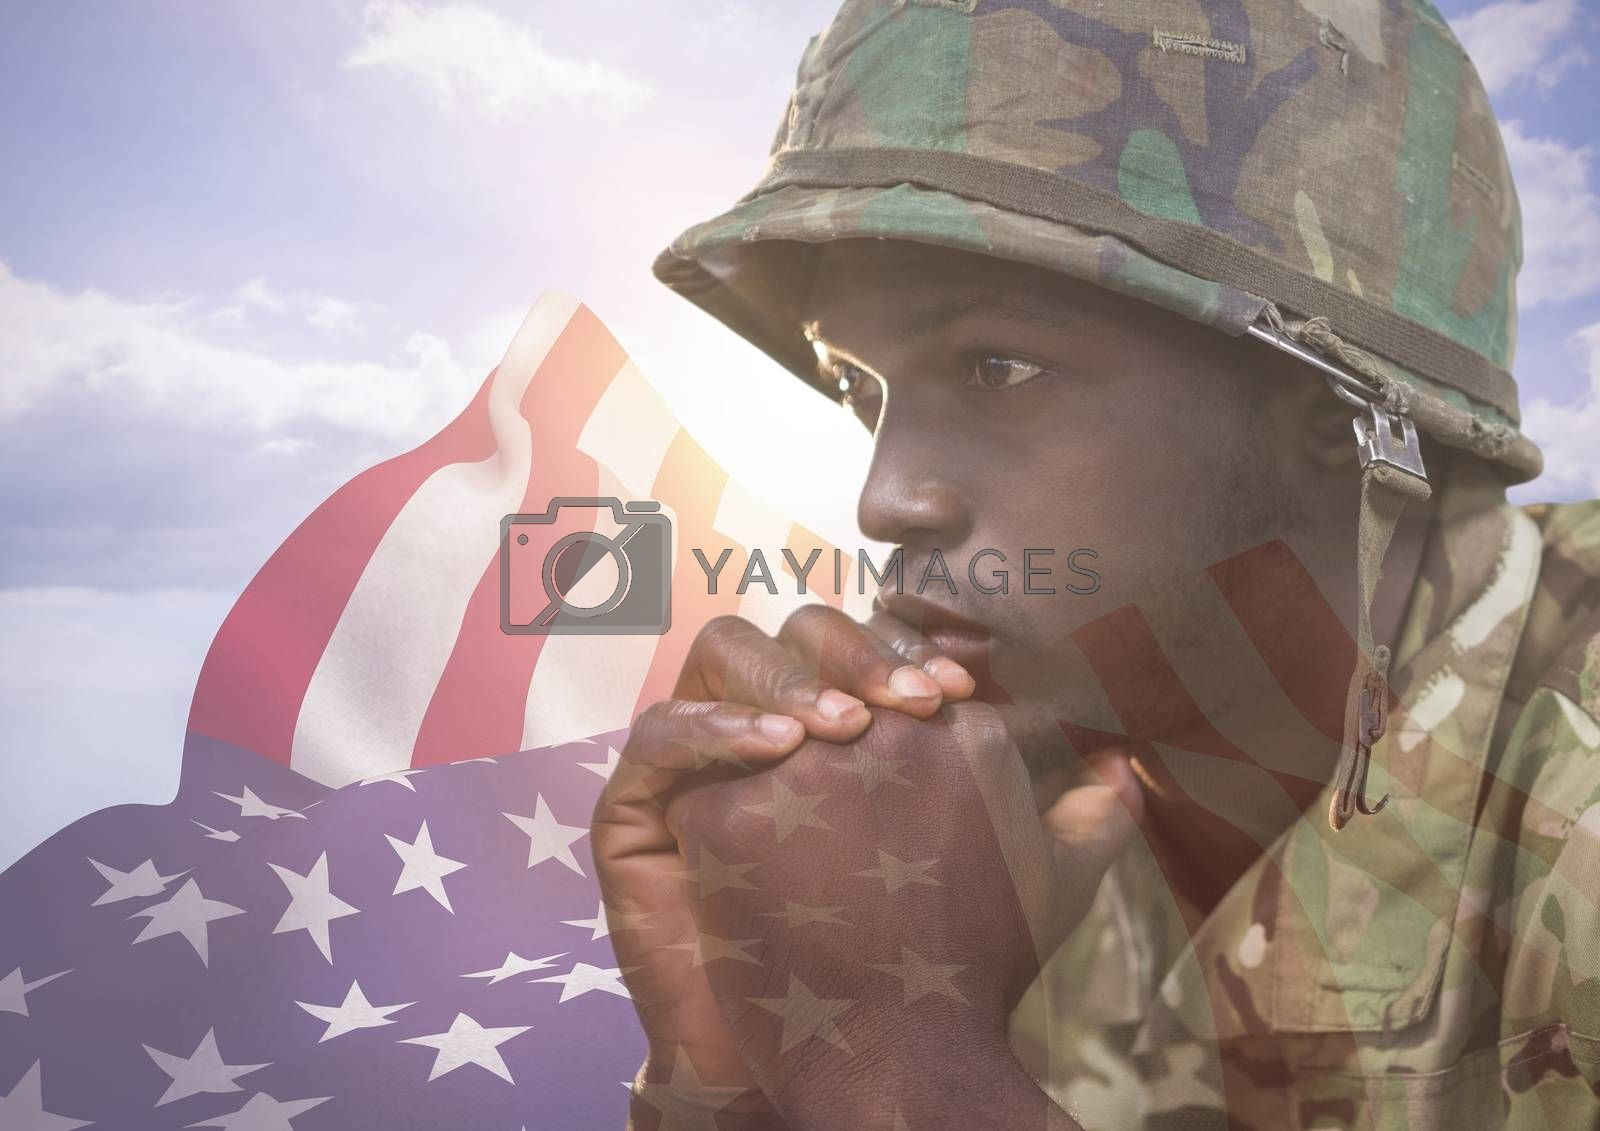 Digital composite of Close up of soldier face in front of the american flag